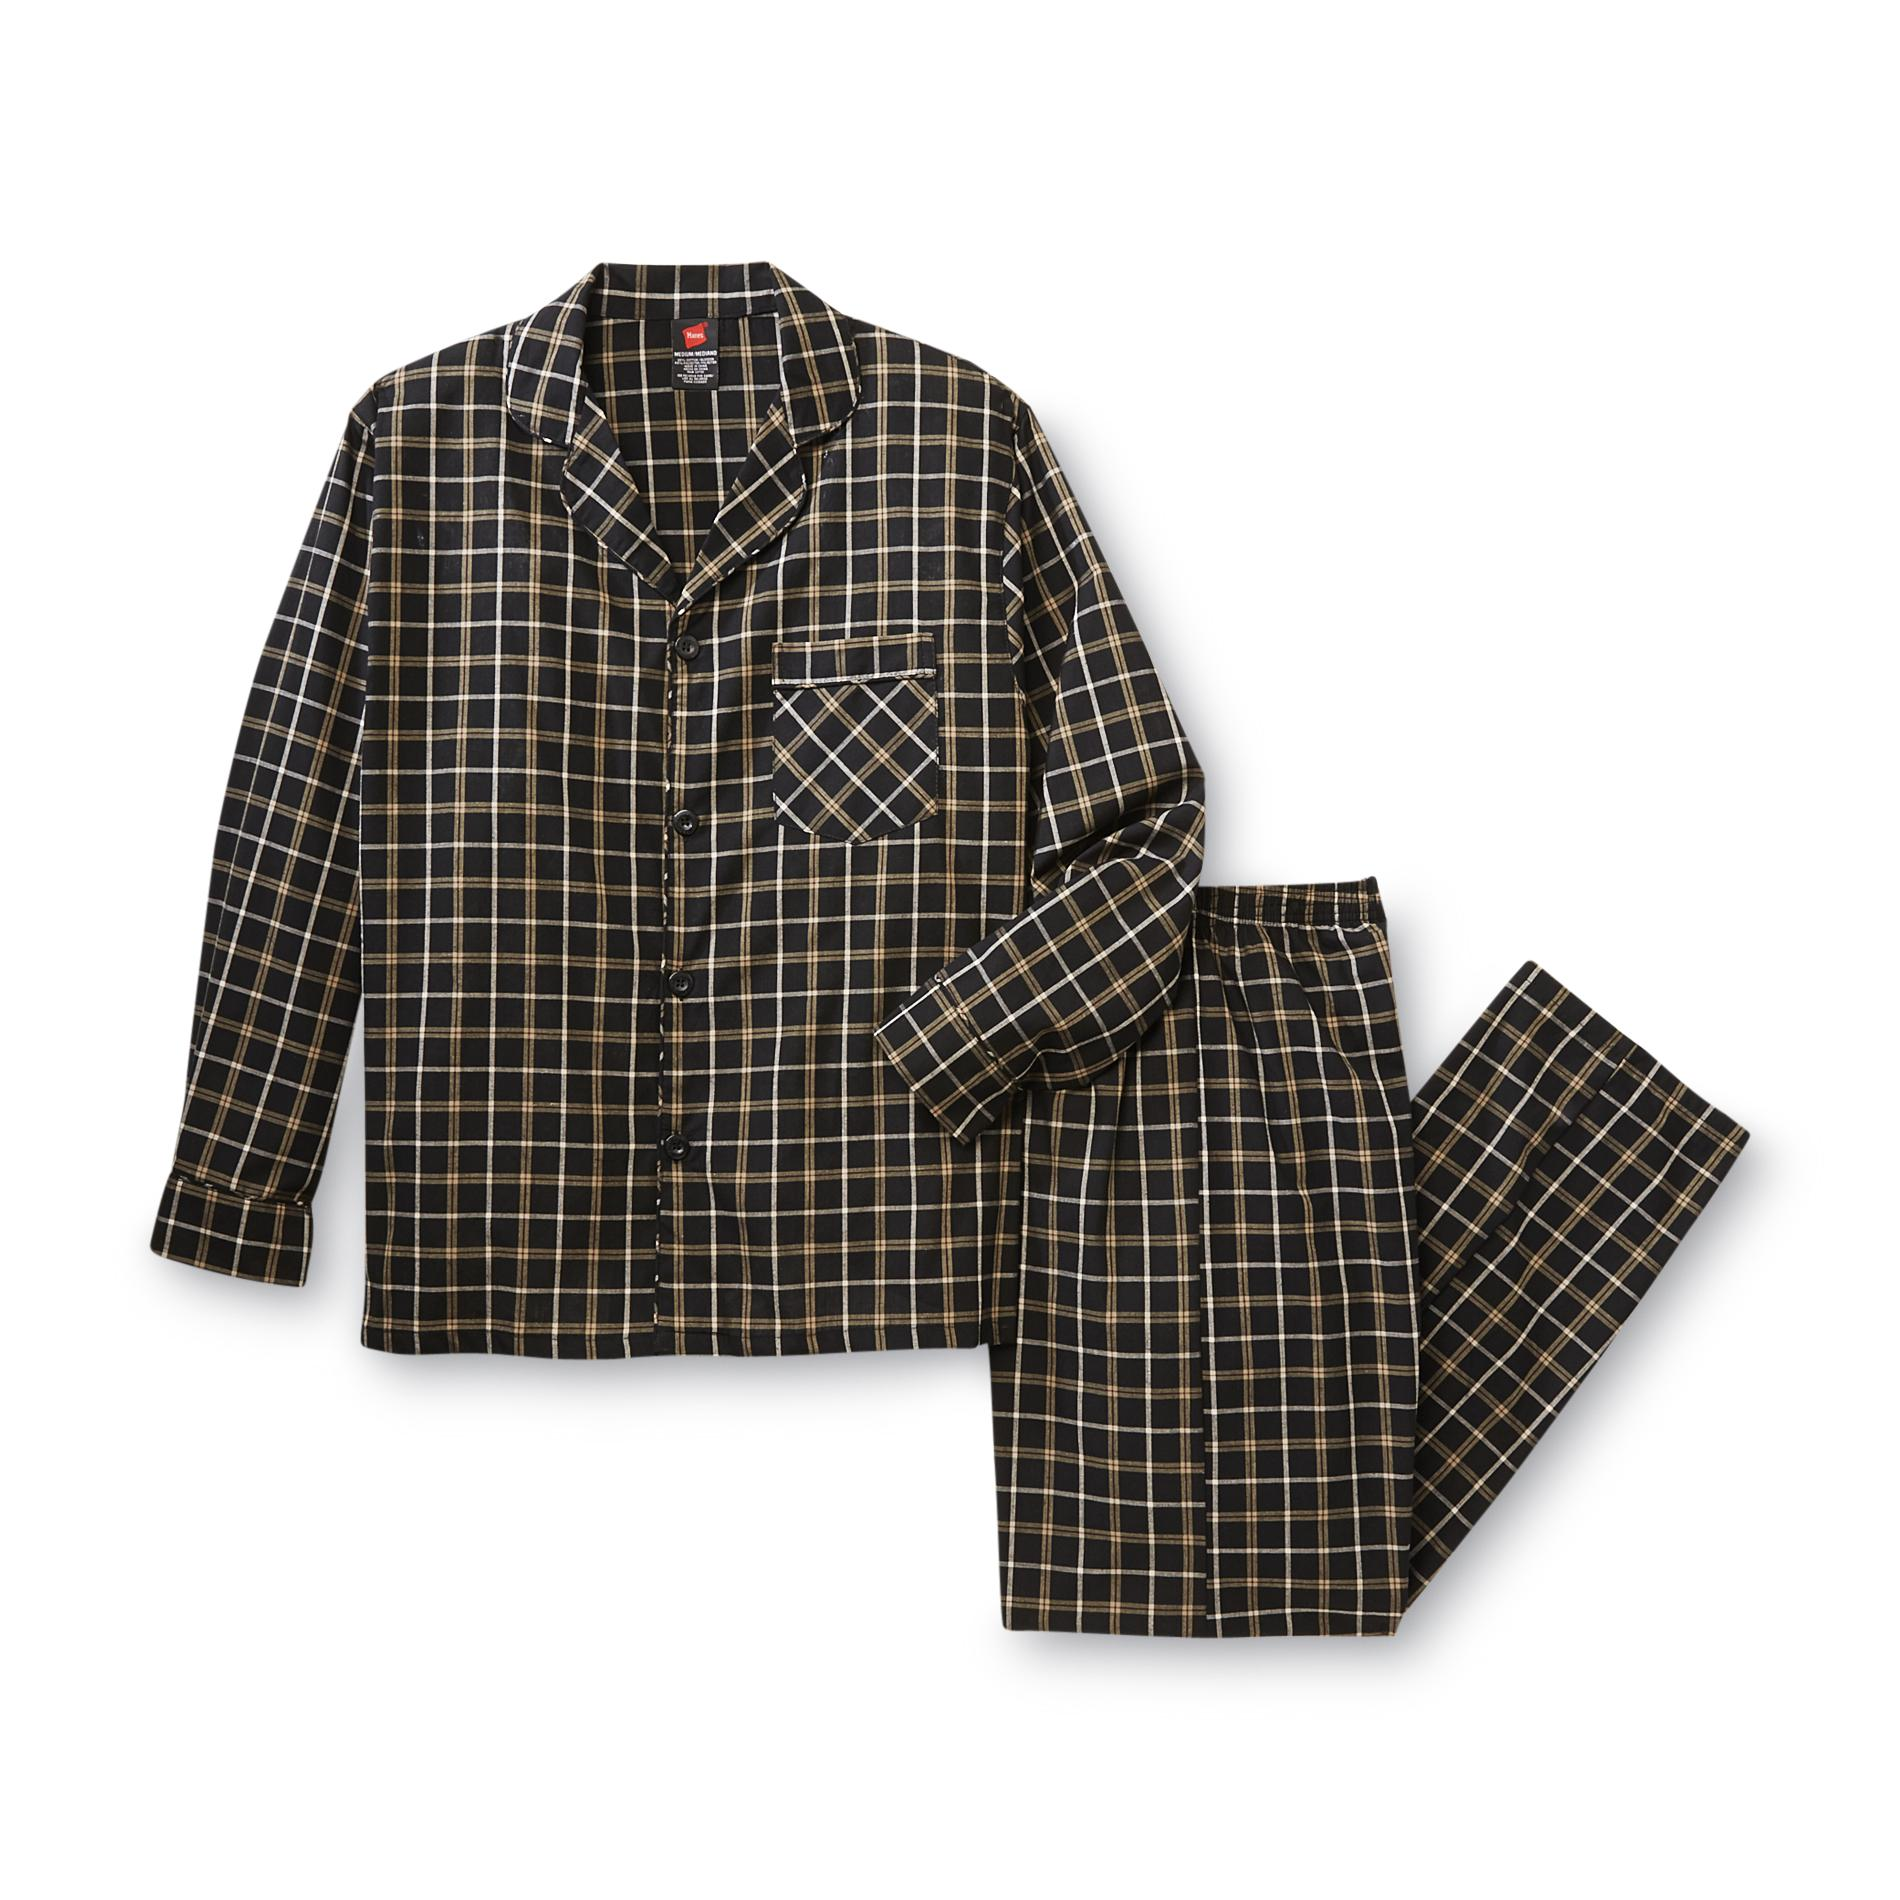 Men's Big & Tall Pajama Shirt & Pants - Plaid